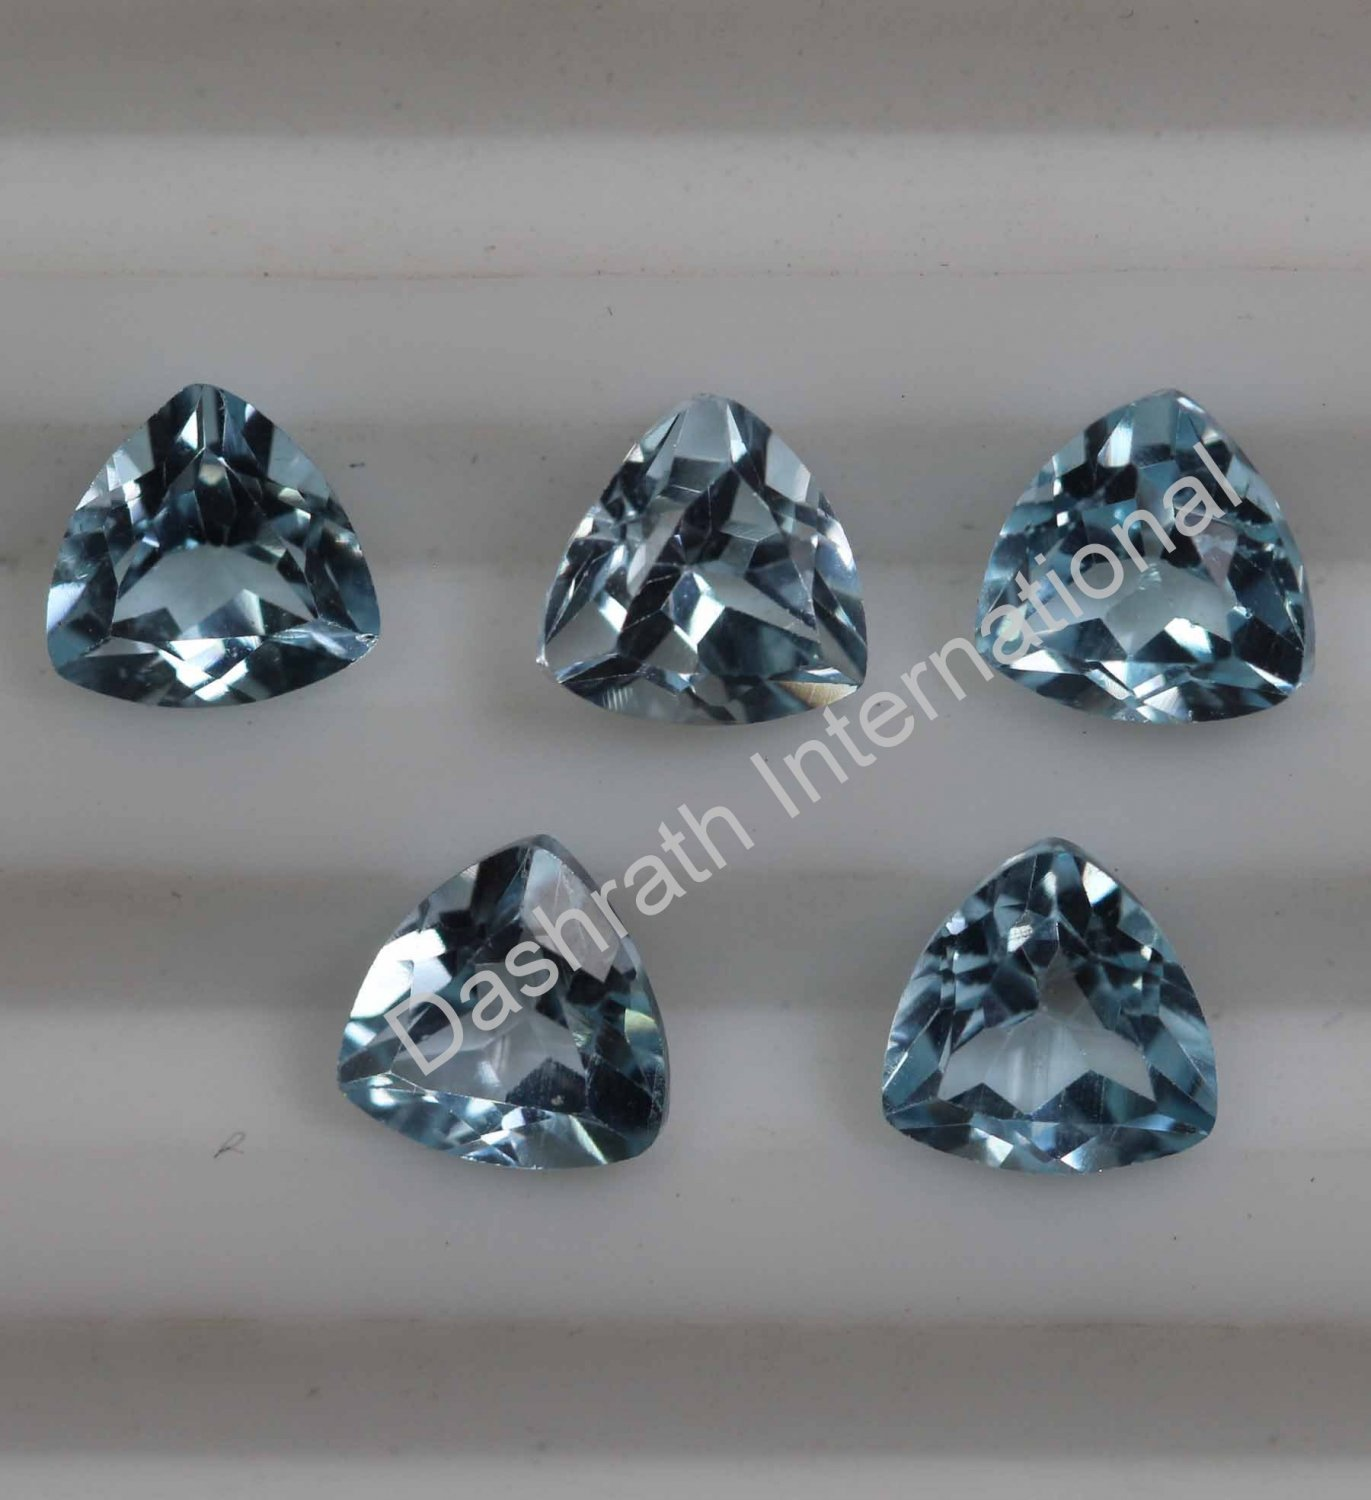 3mm Natural Sky Blue Topaz Faceted Cut Trillion 10 Pieces Lot Top Quality Loose Gemstone